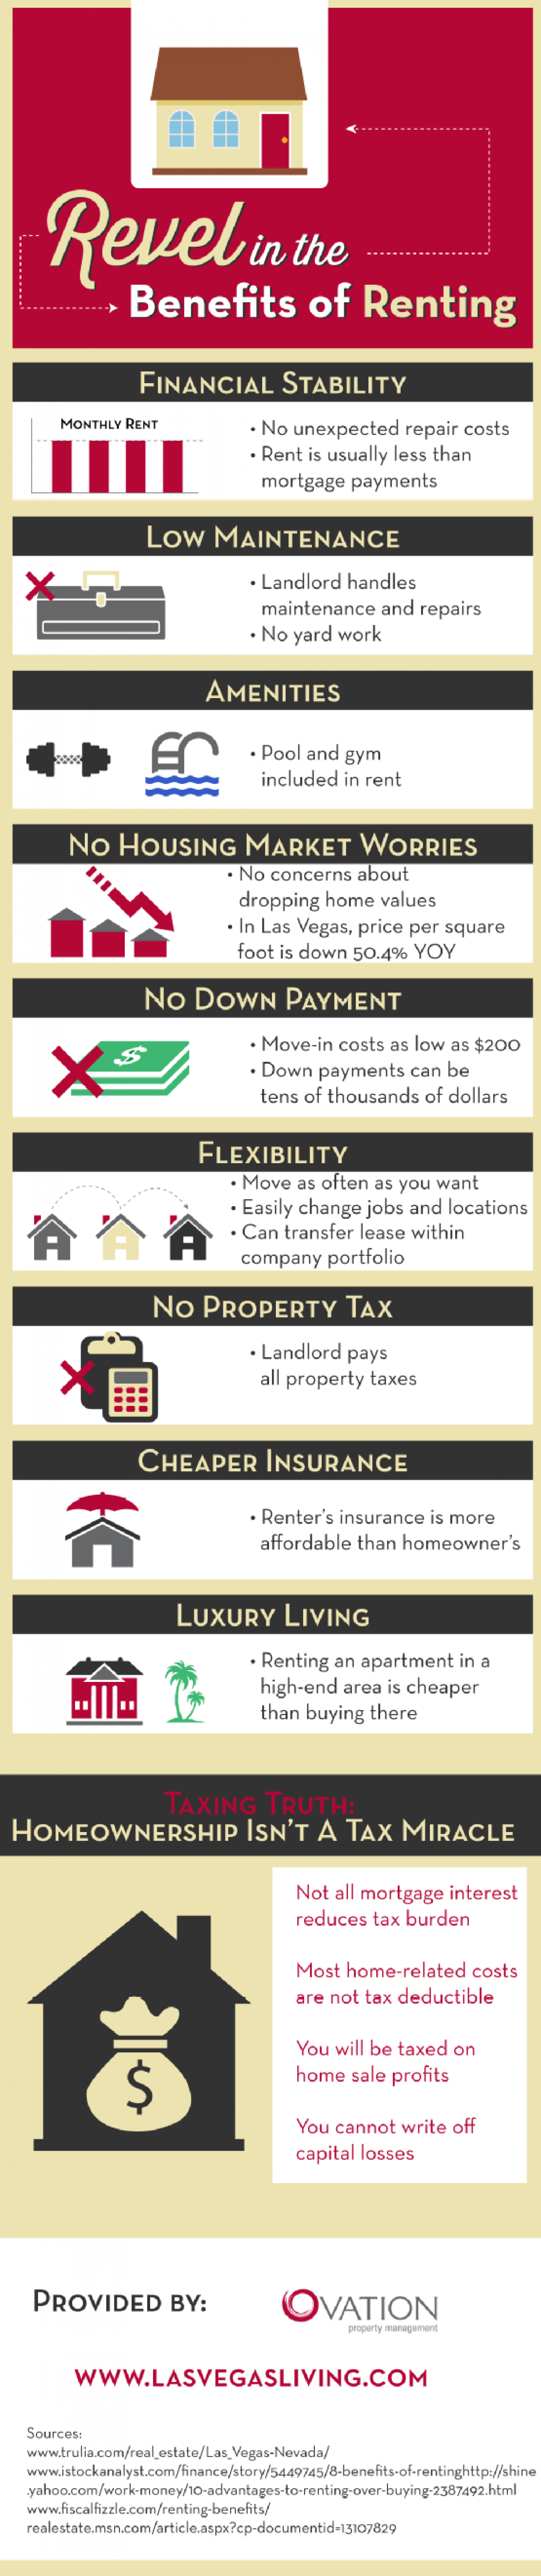 Revel in the Benefits of Renting Infographic